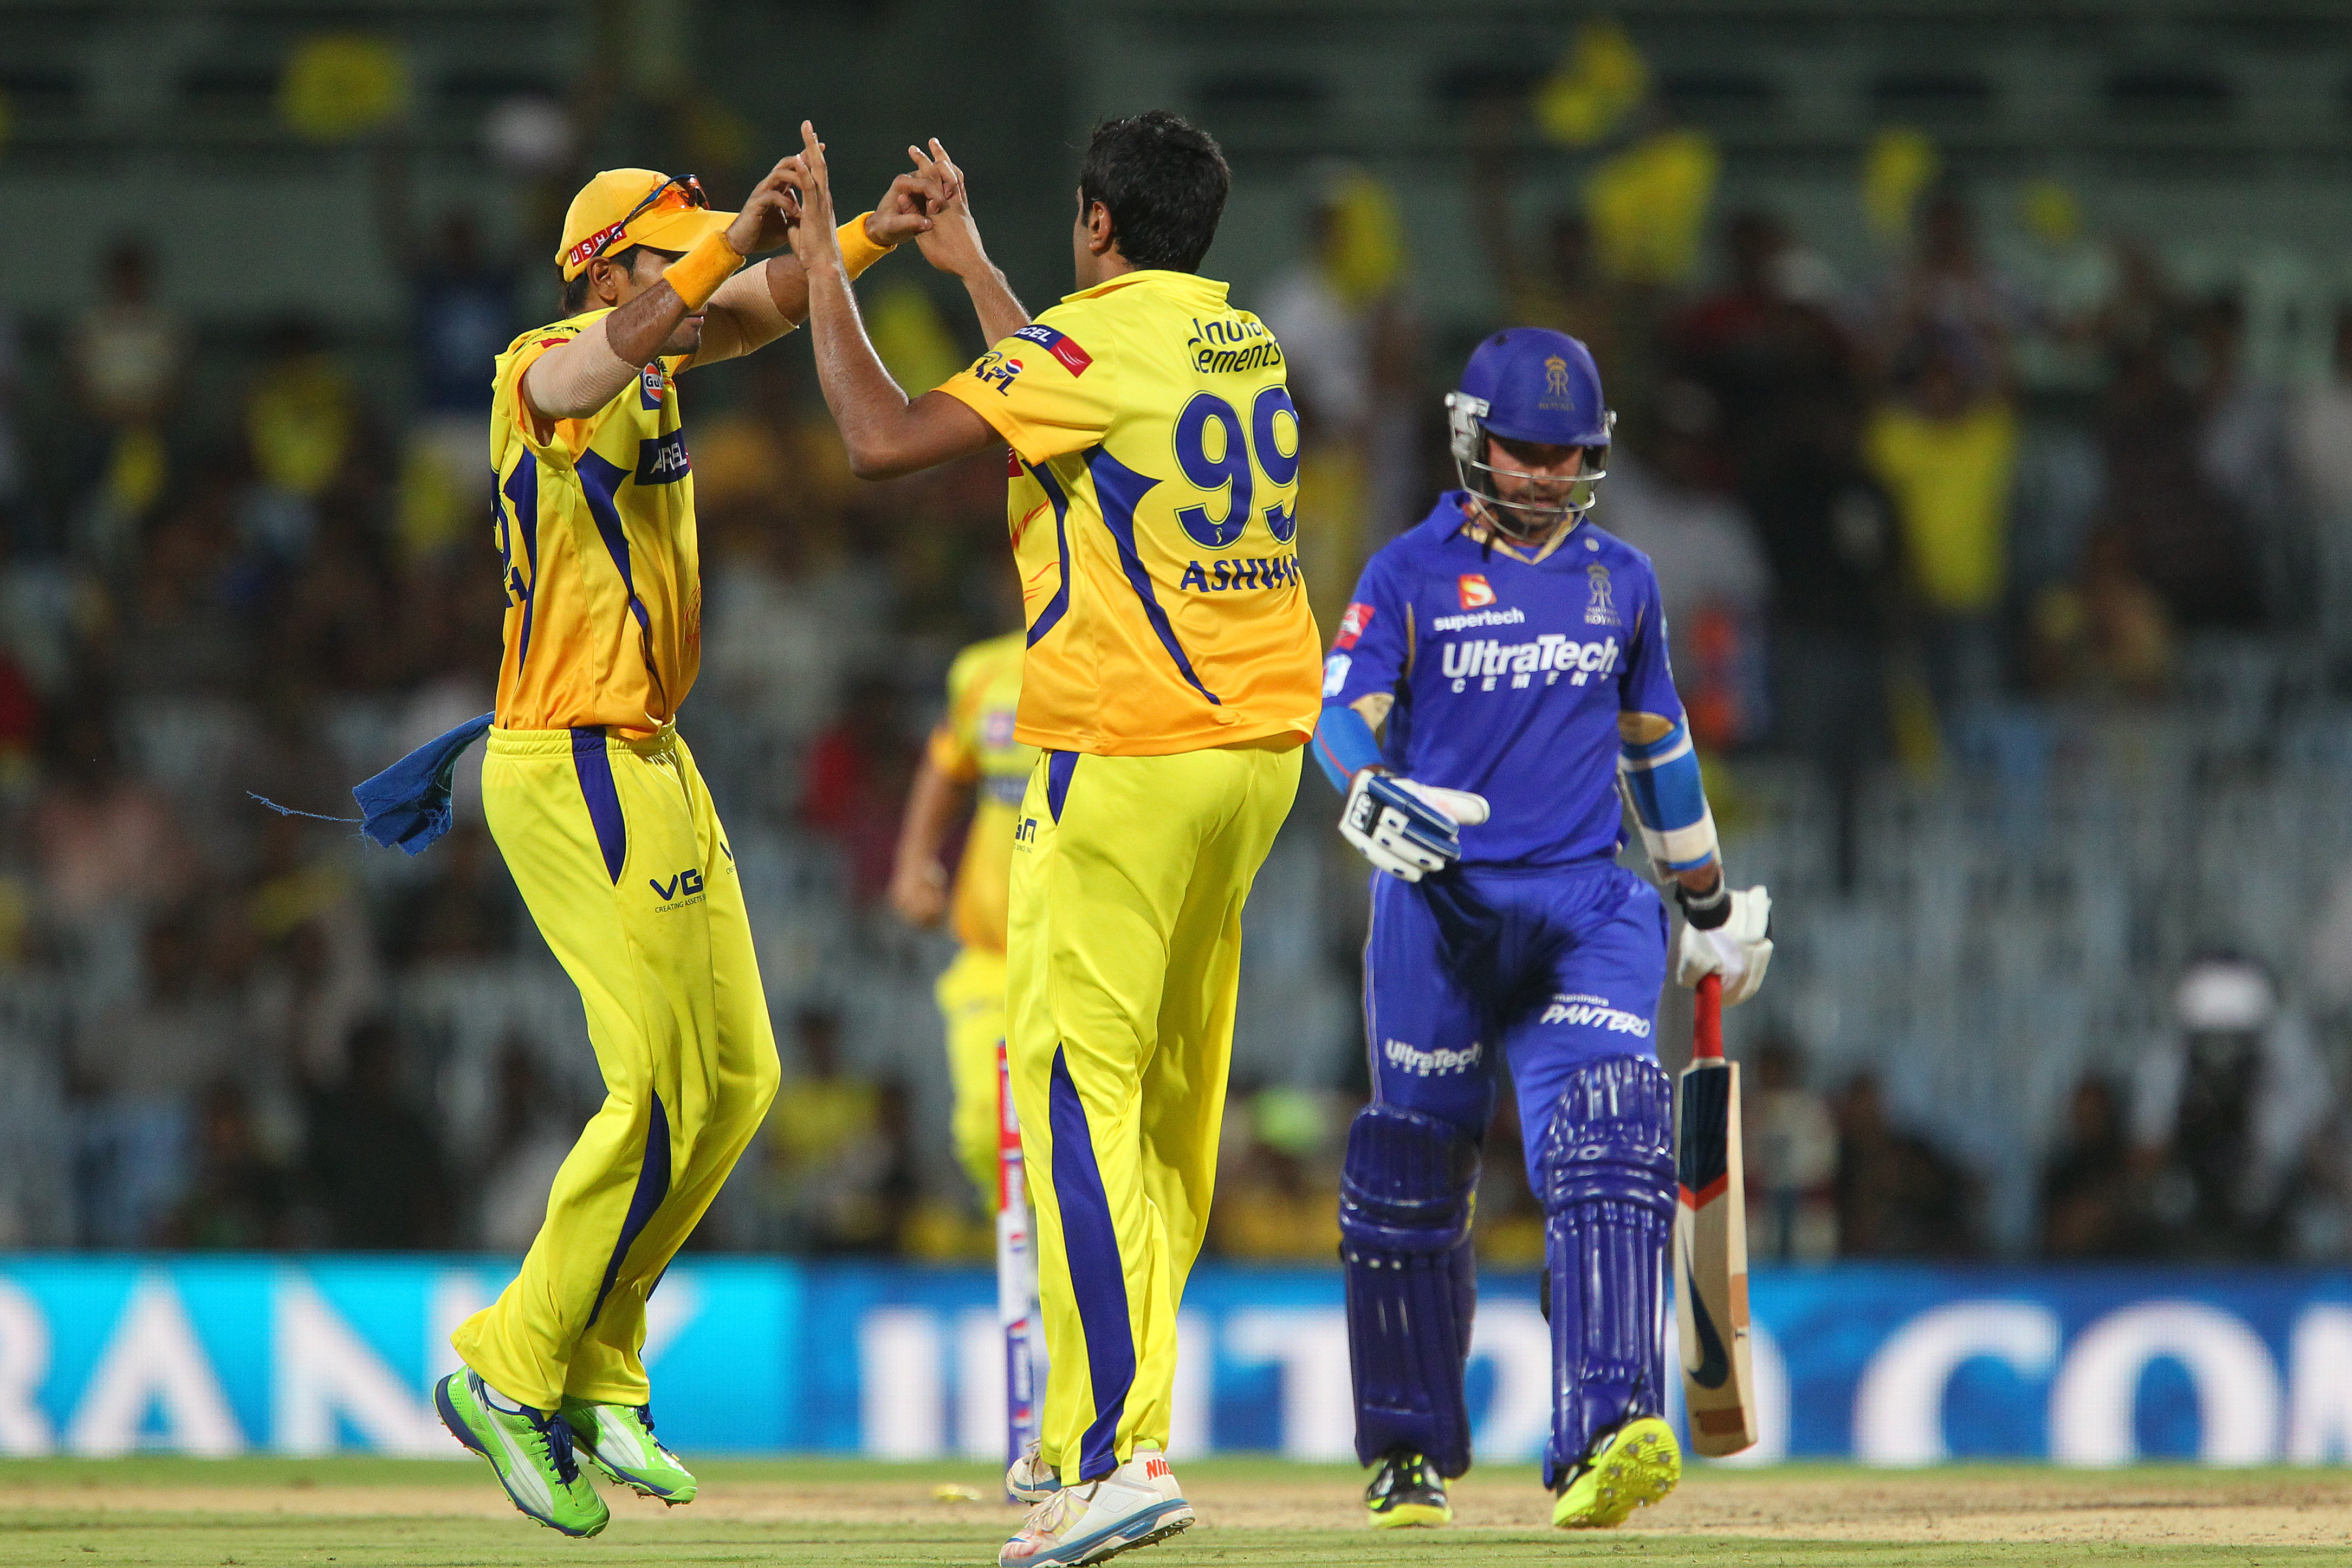 IPL 2013: Rajasthan fight, Chennai fight harder to win